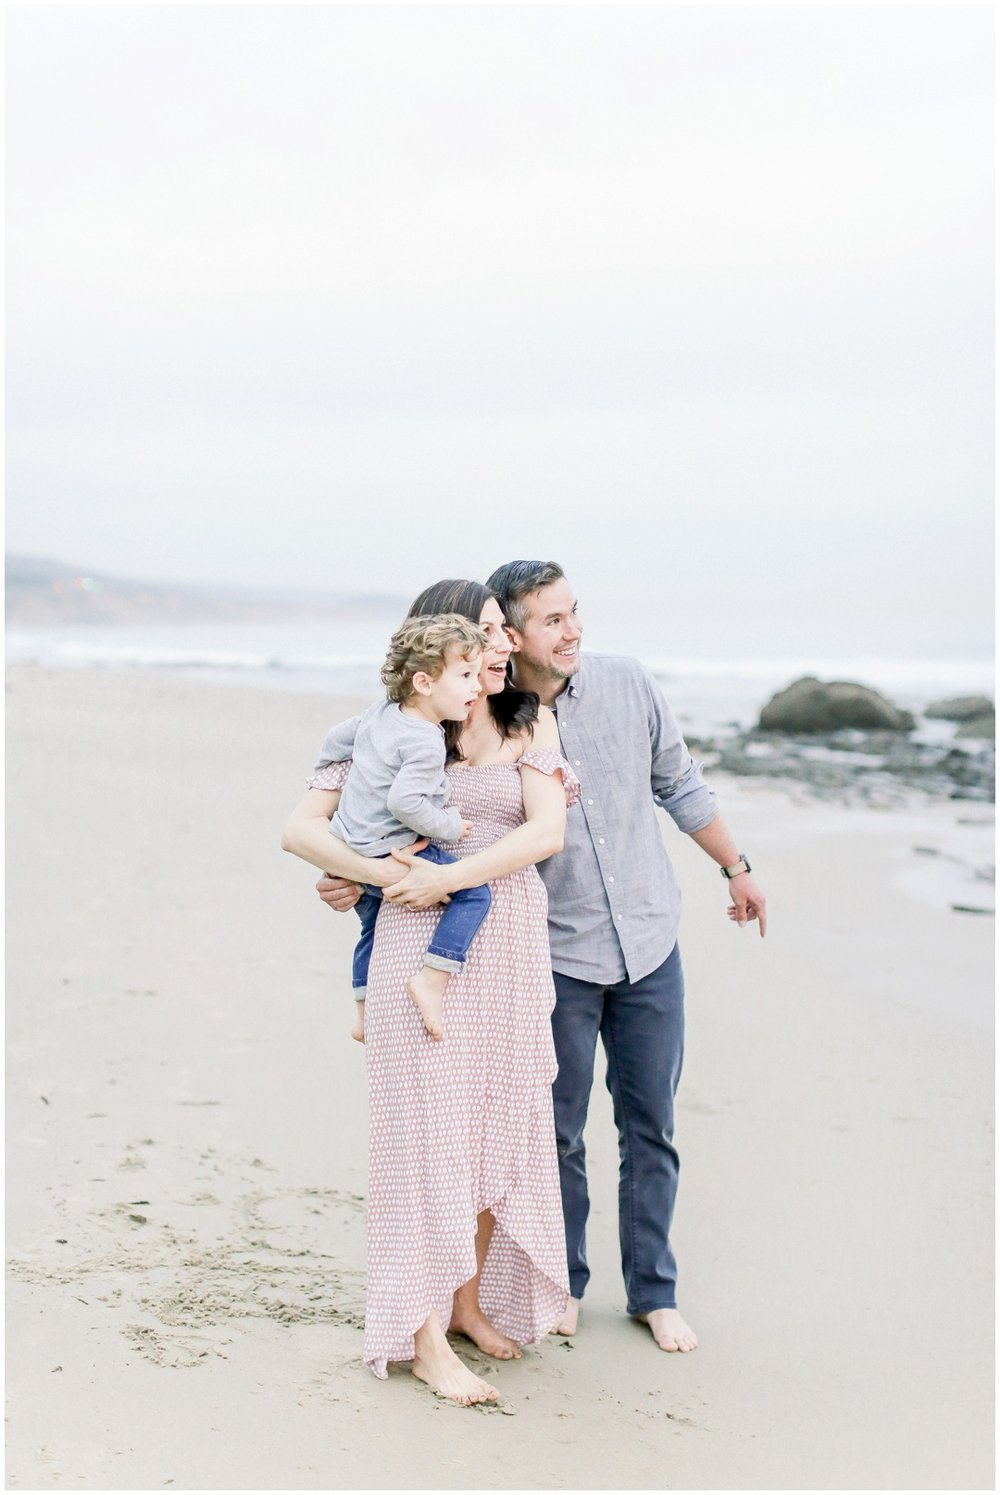 Orange_County_Family_Photographer_Newport_Beach_Family_Photographer_Newport_Beach_Newborn_Photographer_Orange_County_Family_Photographer_Cori_Kleckner_Photography_Huntington_Beach_Photographer_Asher_Family_2618.jpg